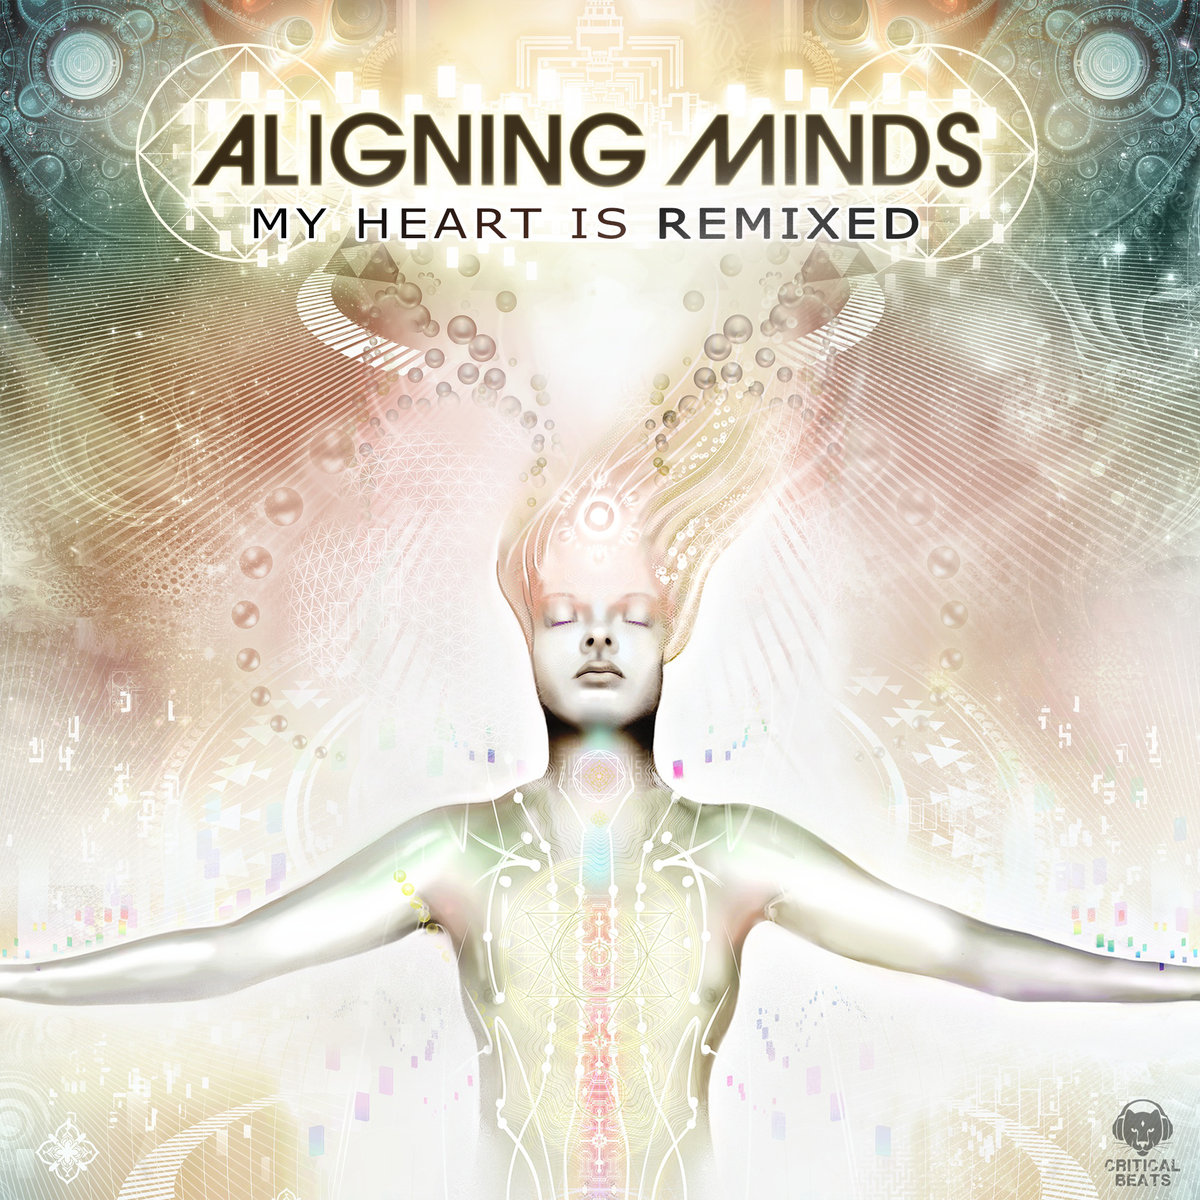 Aligning Minds - My Heart Is Love (Anvil Hands Remix) @ 'My Heart Is Remixed' album (asheville, baltimore)